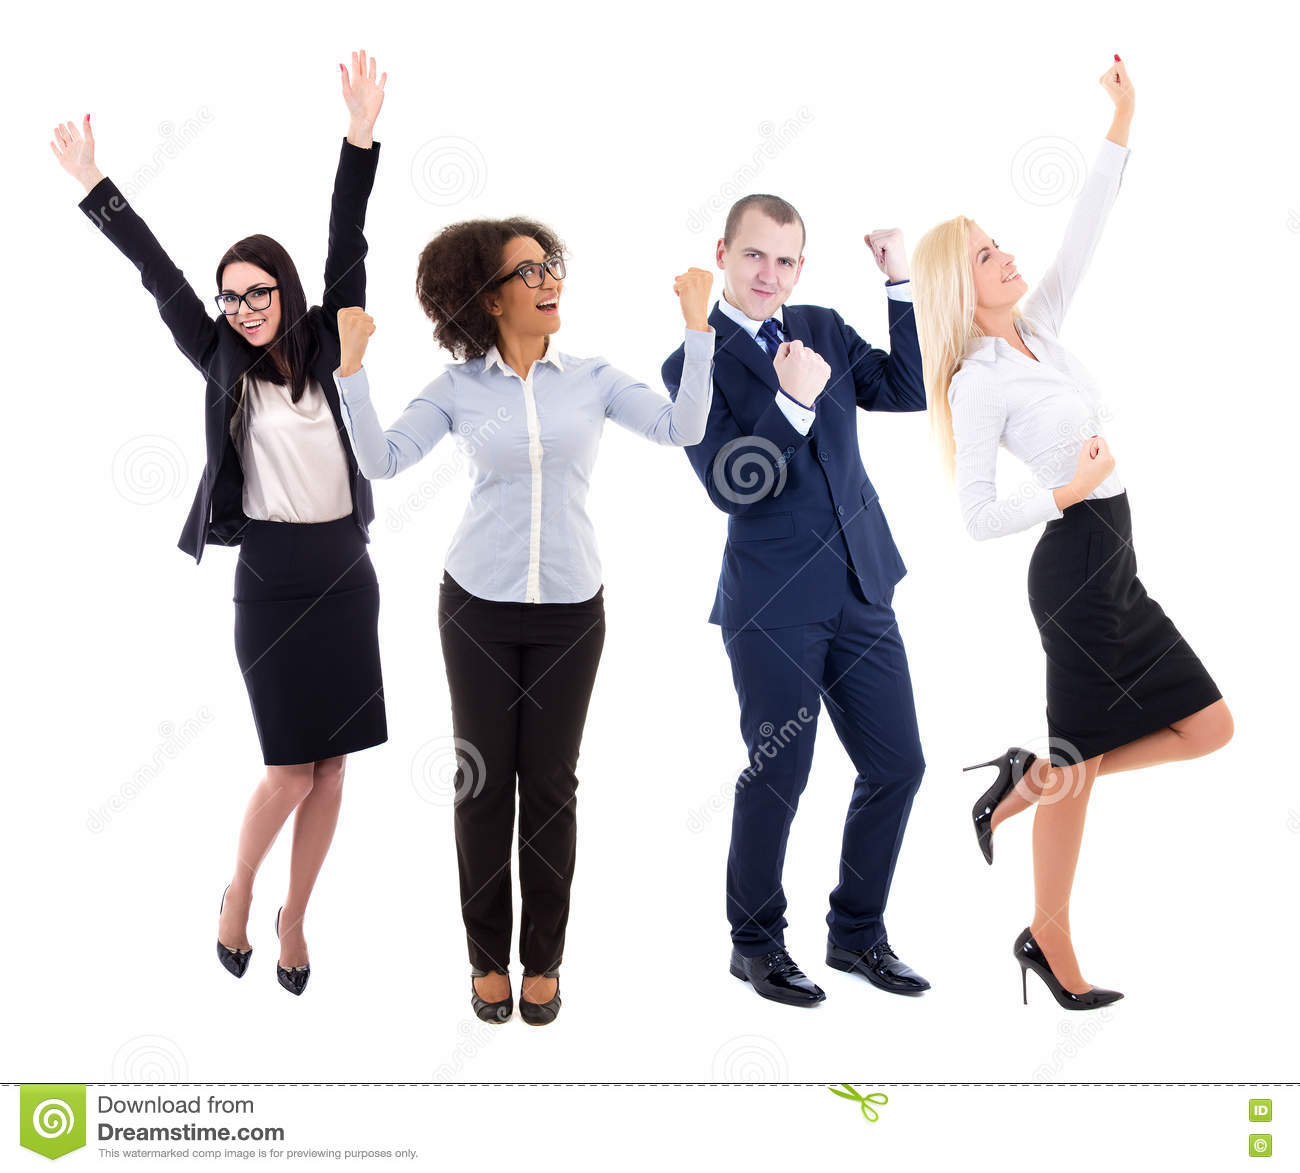 happy young group of business people celebrating something isolated on white